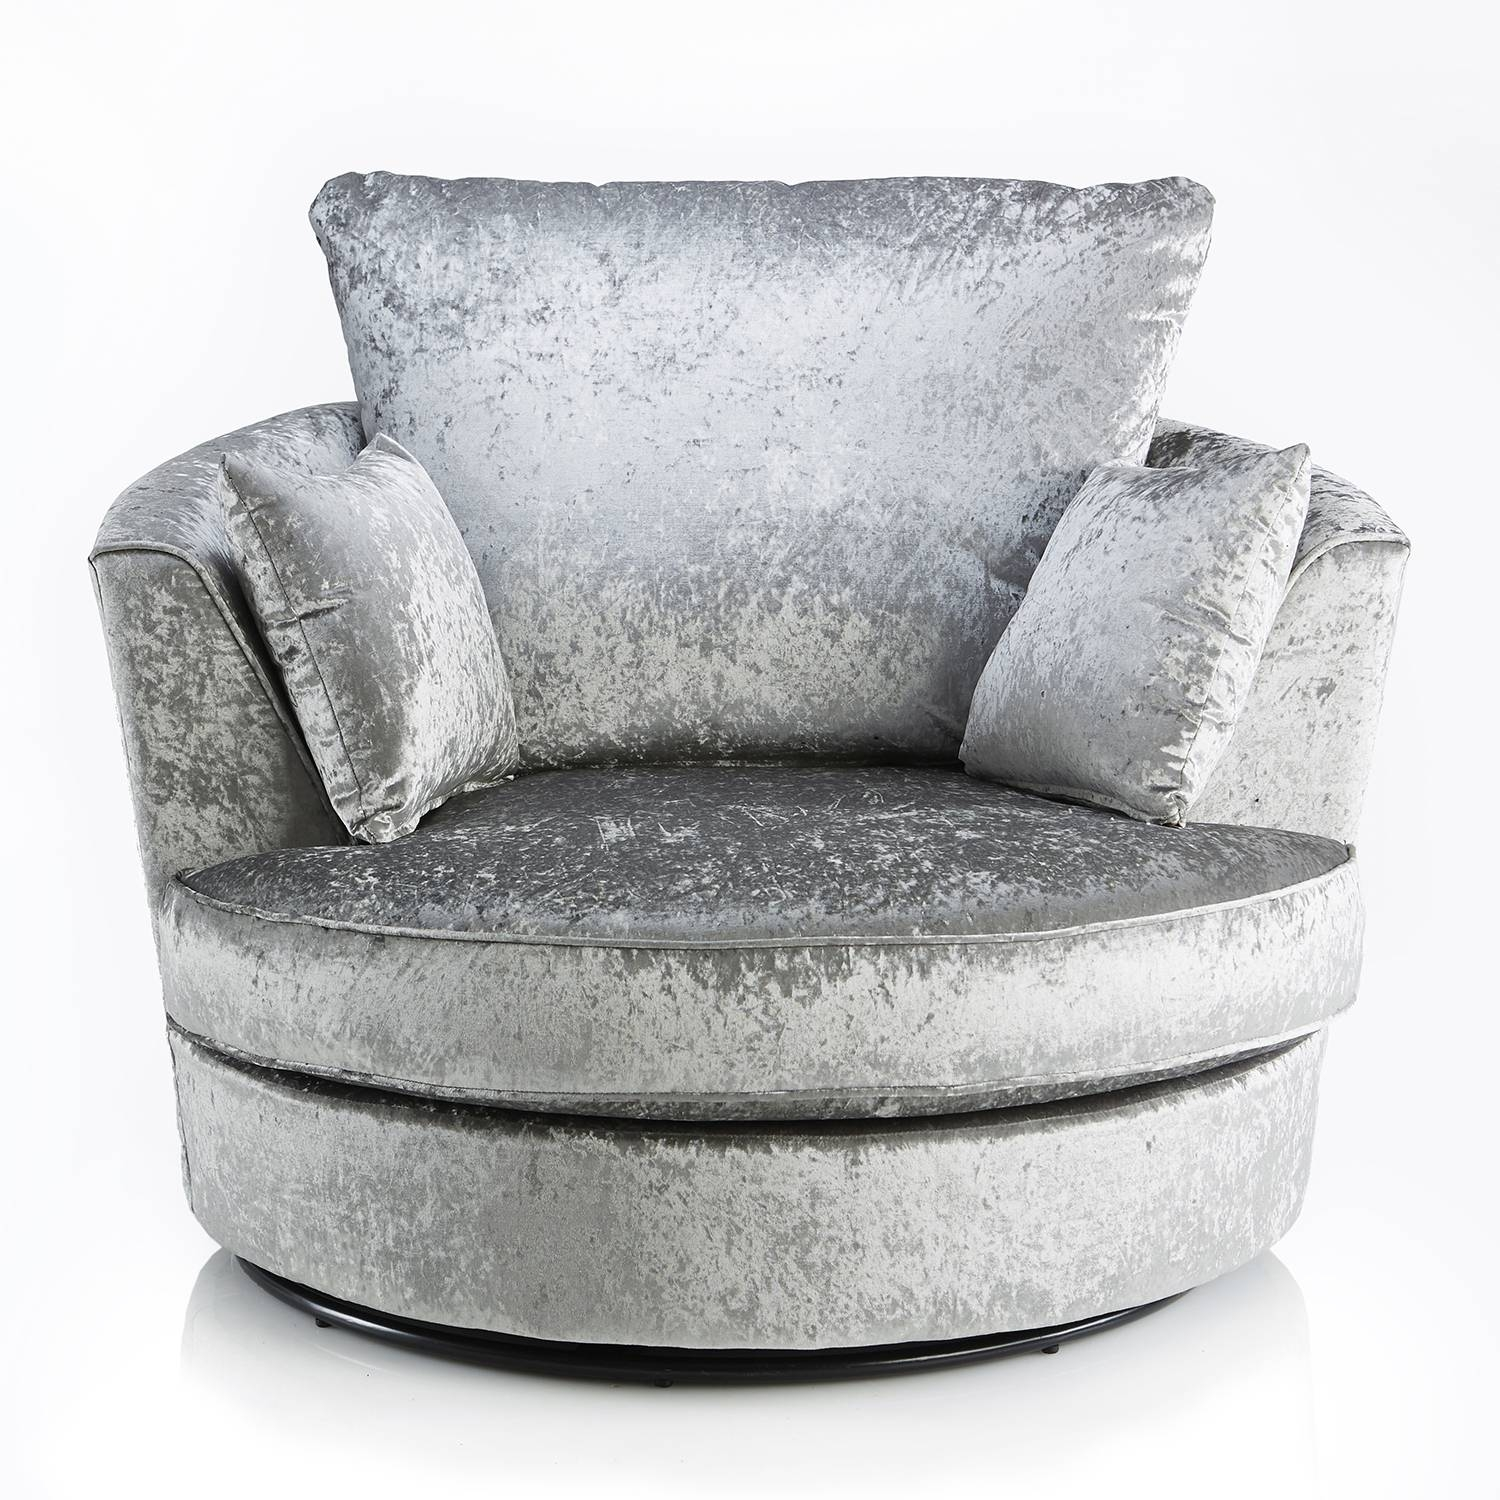 Crushed Velvet Furniture | Sofas, Beds, Chairs, Cushions Pertaining To Swivel Sofa Chairs (View 13 of 30)